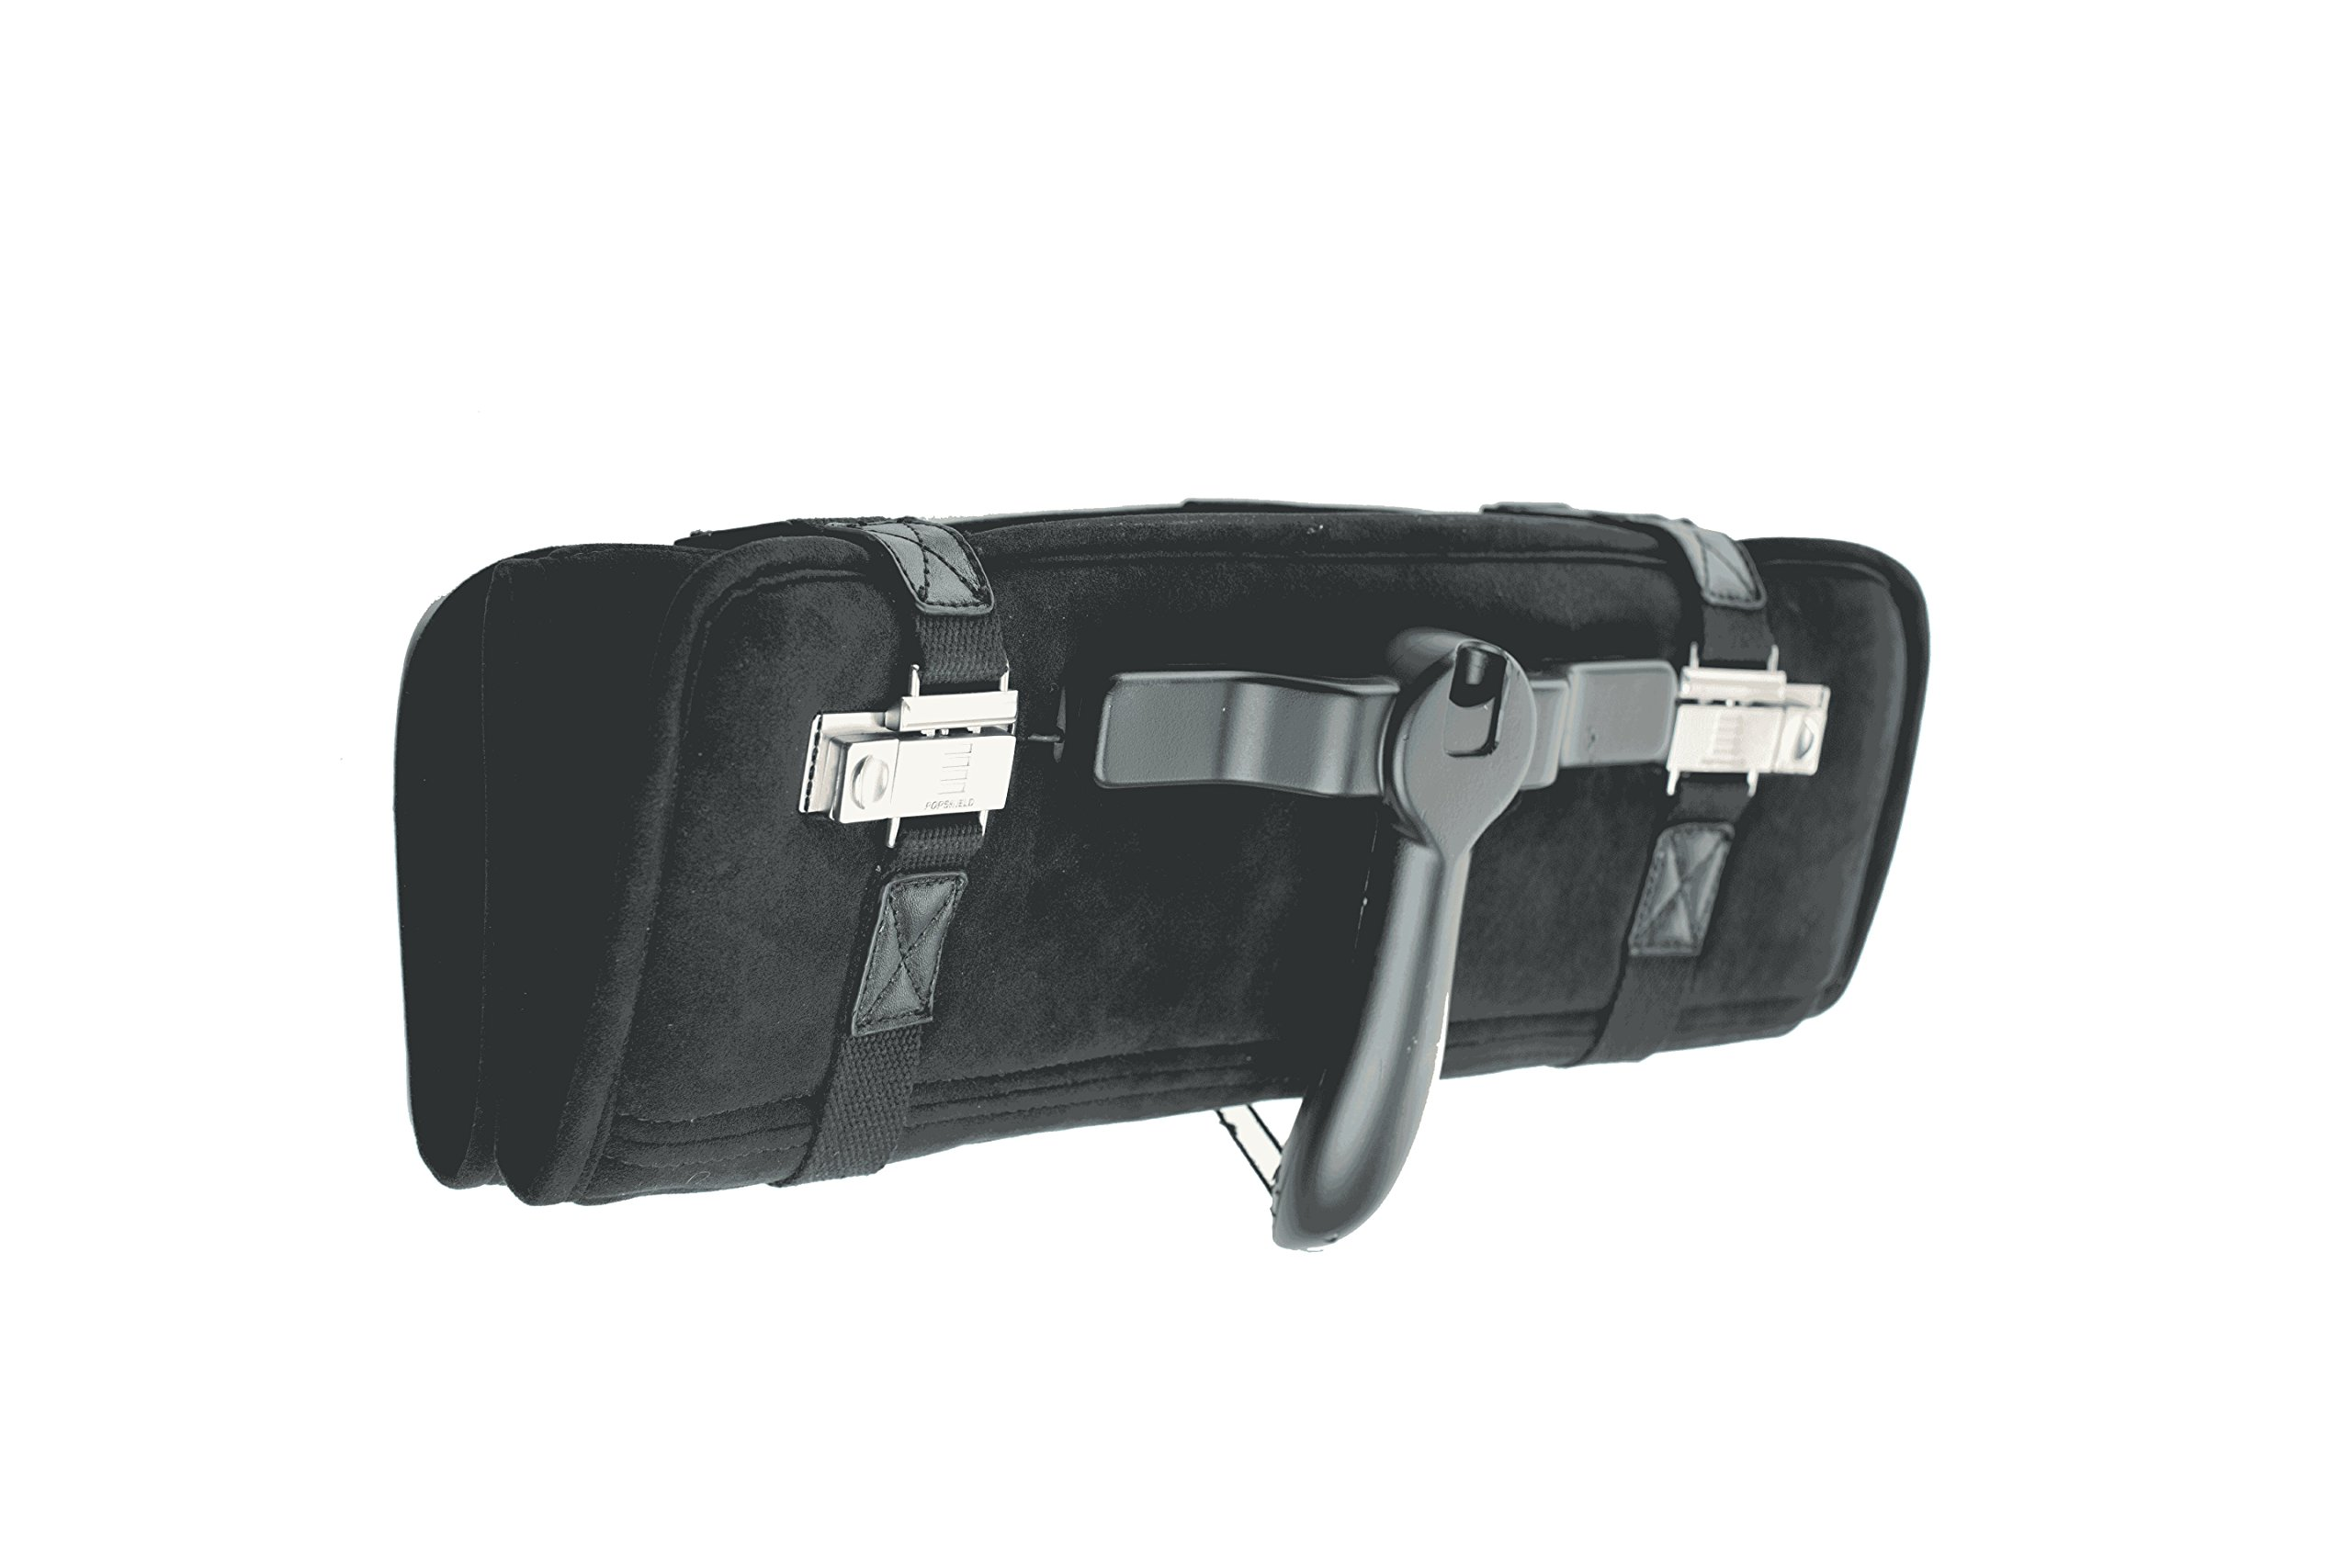 PopSheild---Deployable Ballistic Shield Designed in the USA, Fits in Car, Home and Office Drawer